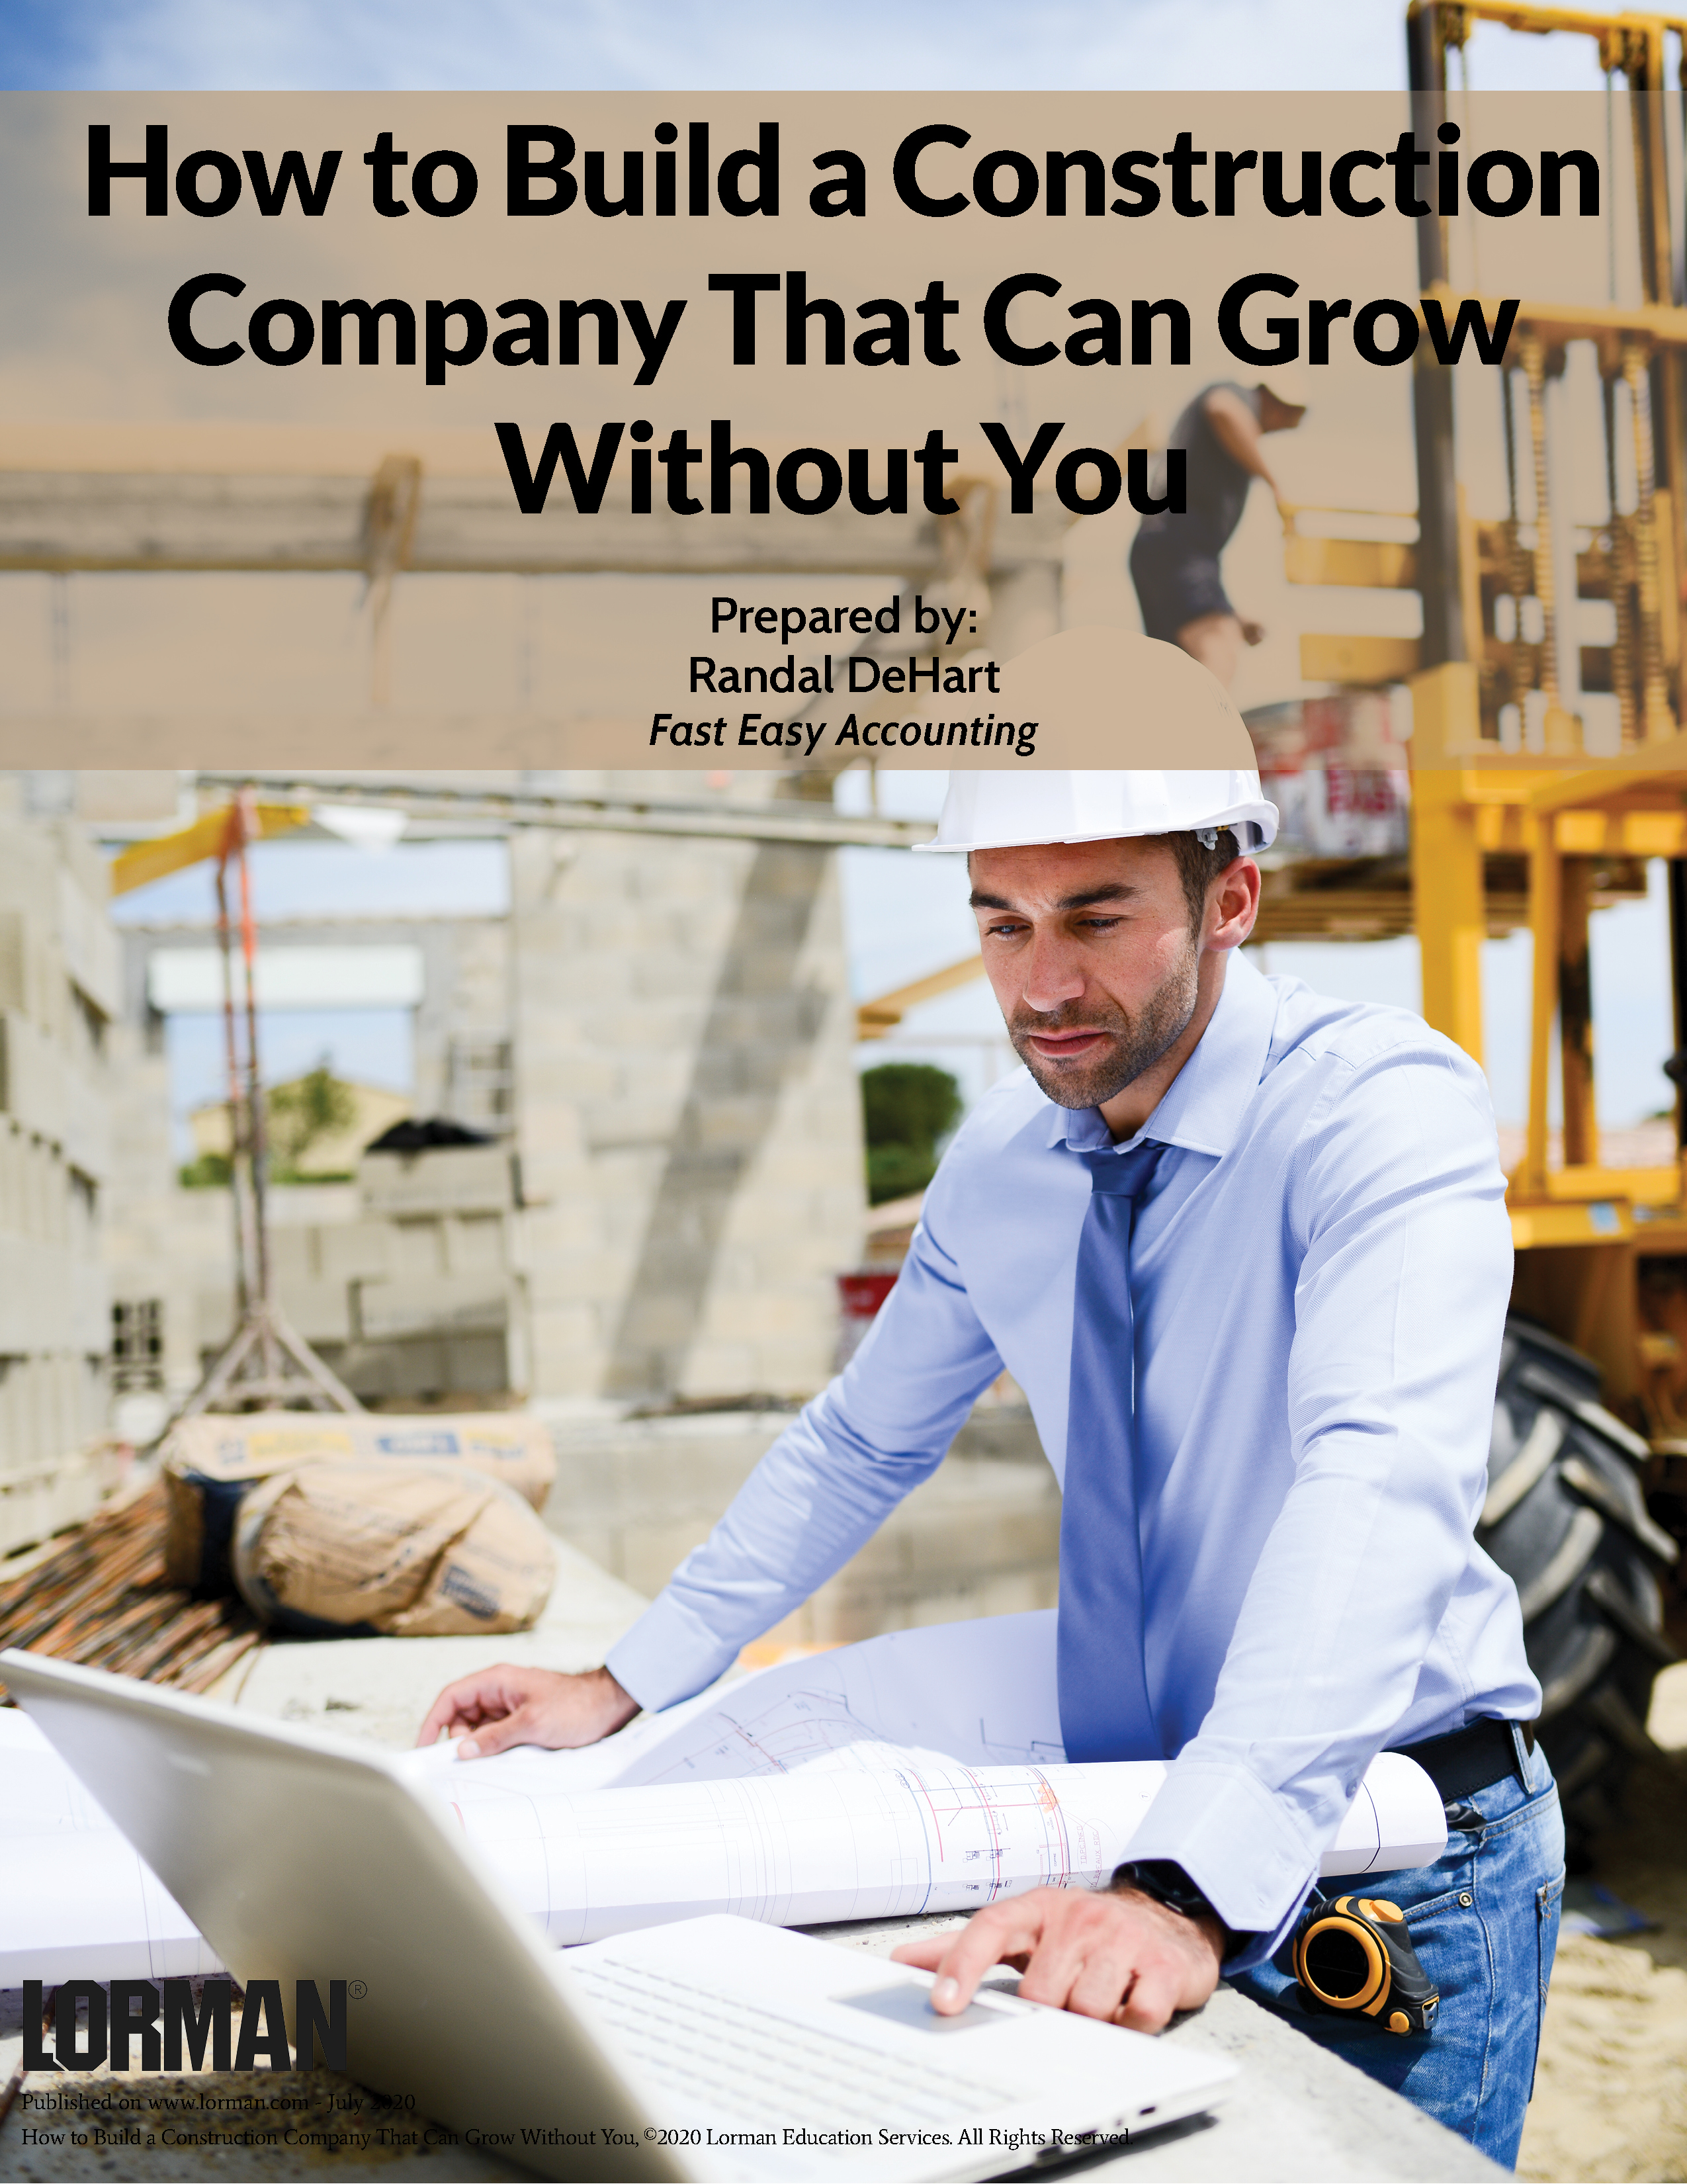 How to Build a Construction Company That Can Grow Without You